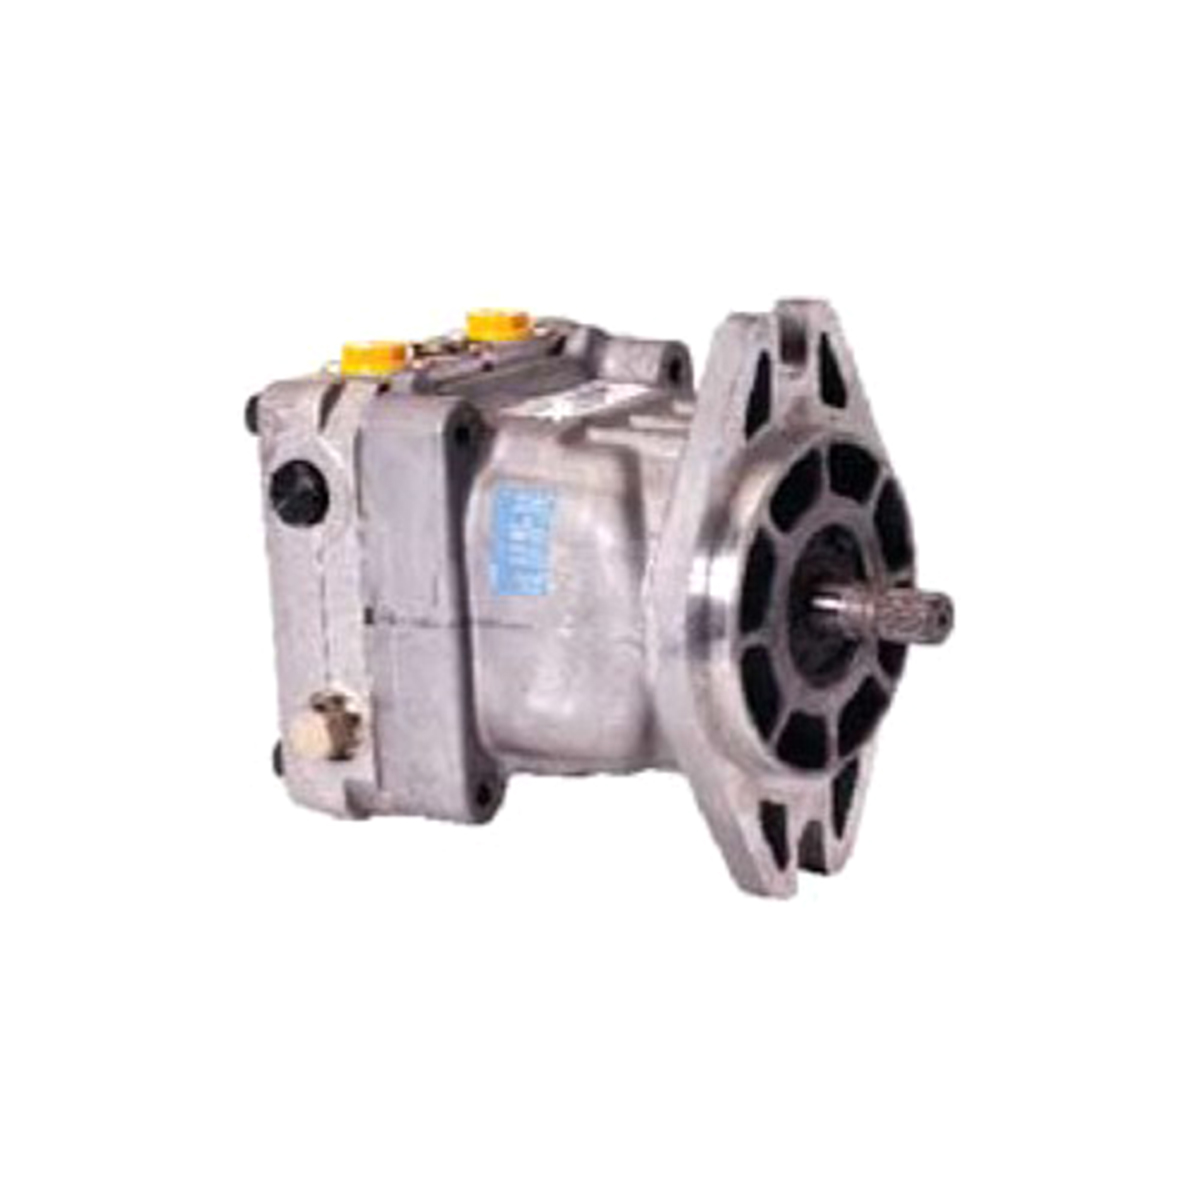 200313 Dixie Chopper L Hydro-Gear Pump